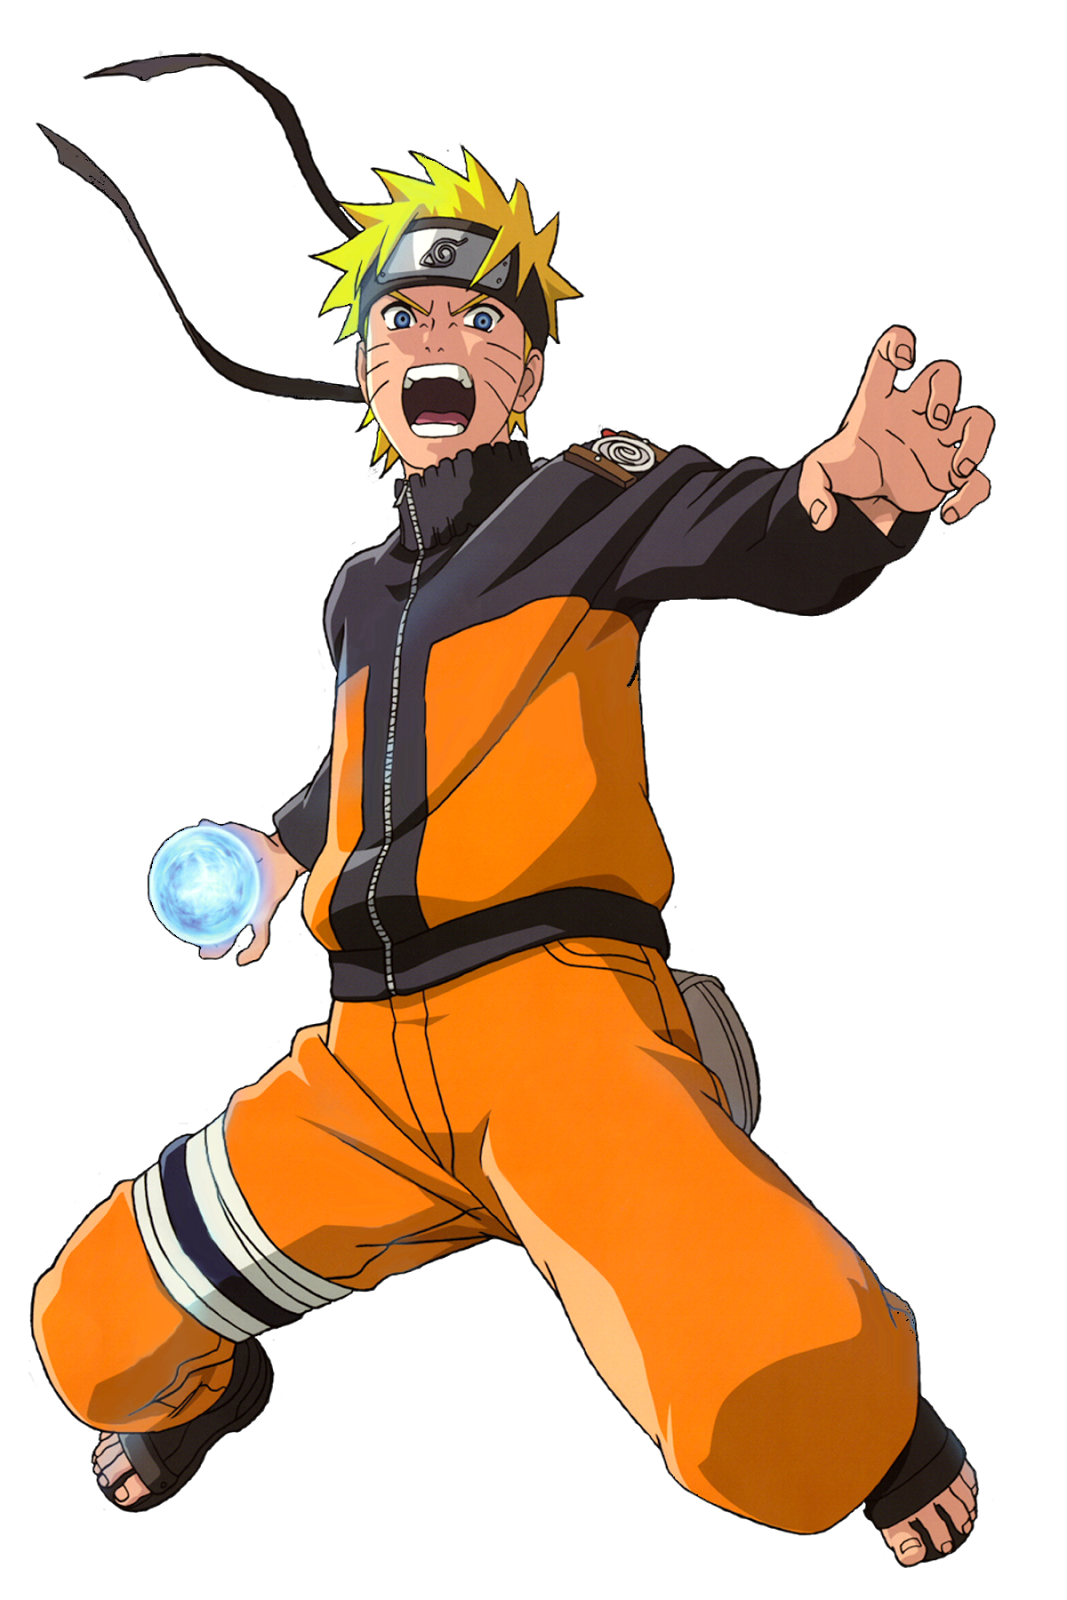 Naruto rasengan png. Anime pinterest and narutorasenganpng